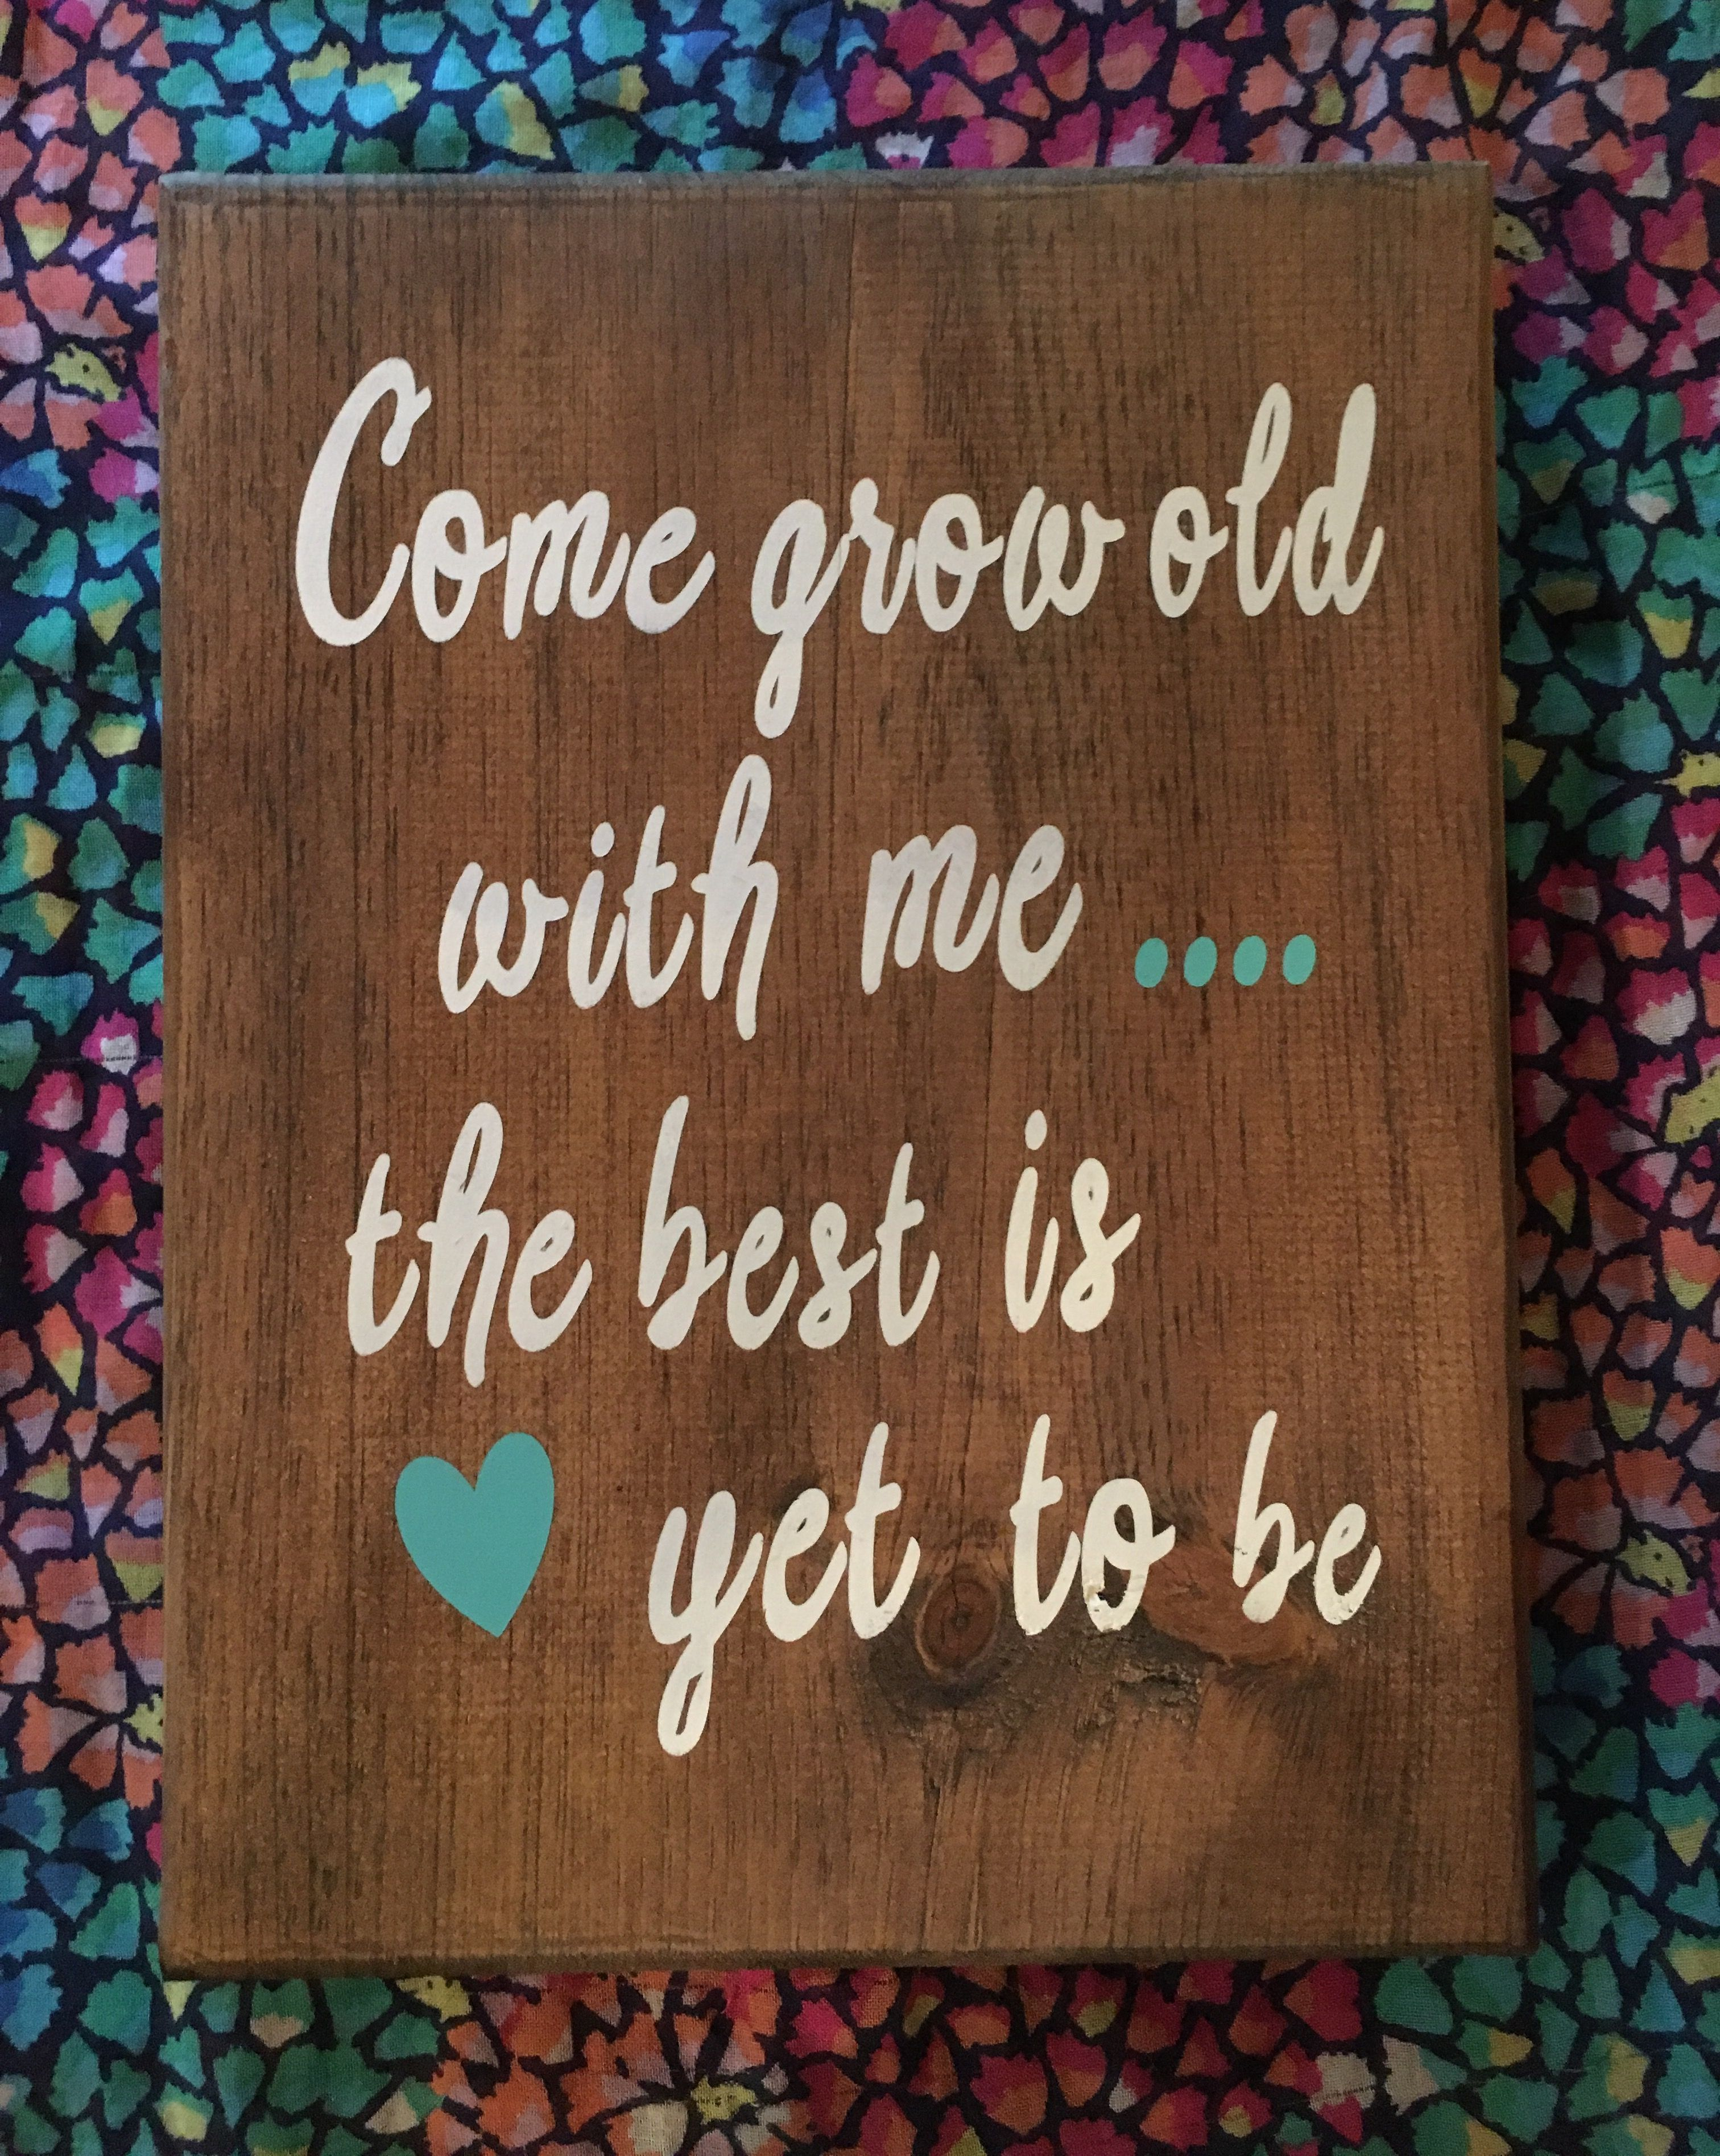 Inspirational Signs, Wood Signs, Come grow old with me the best is yet to be, home décor